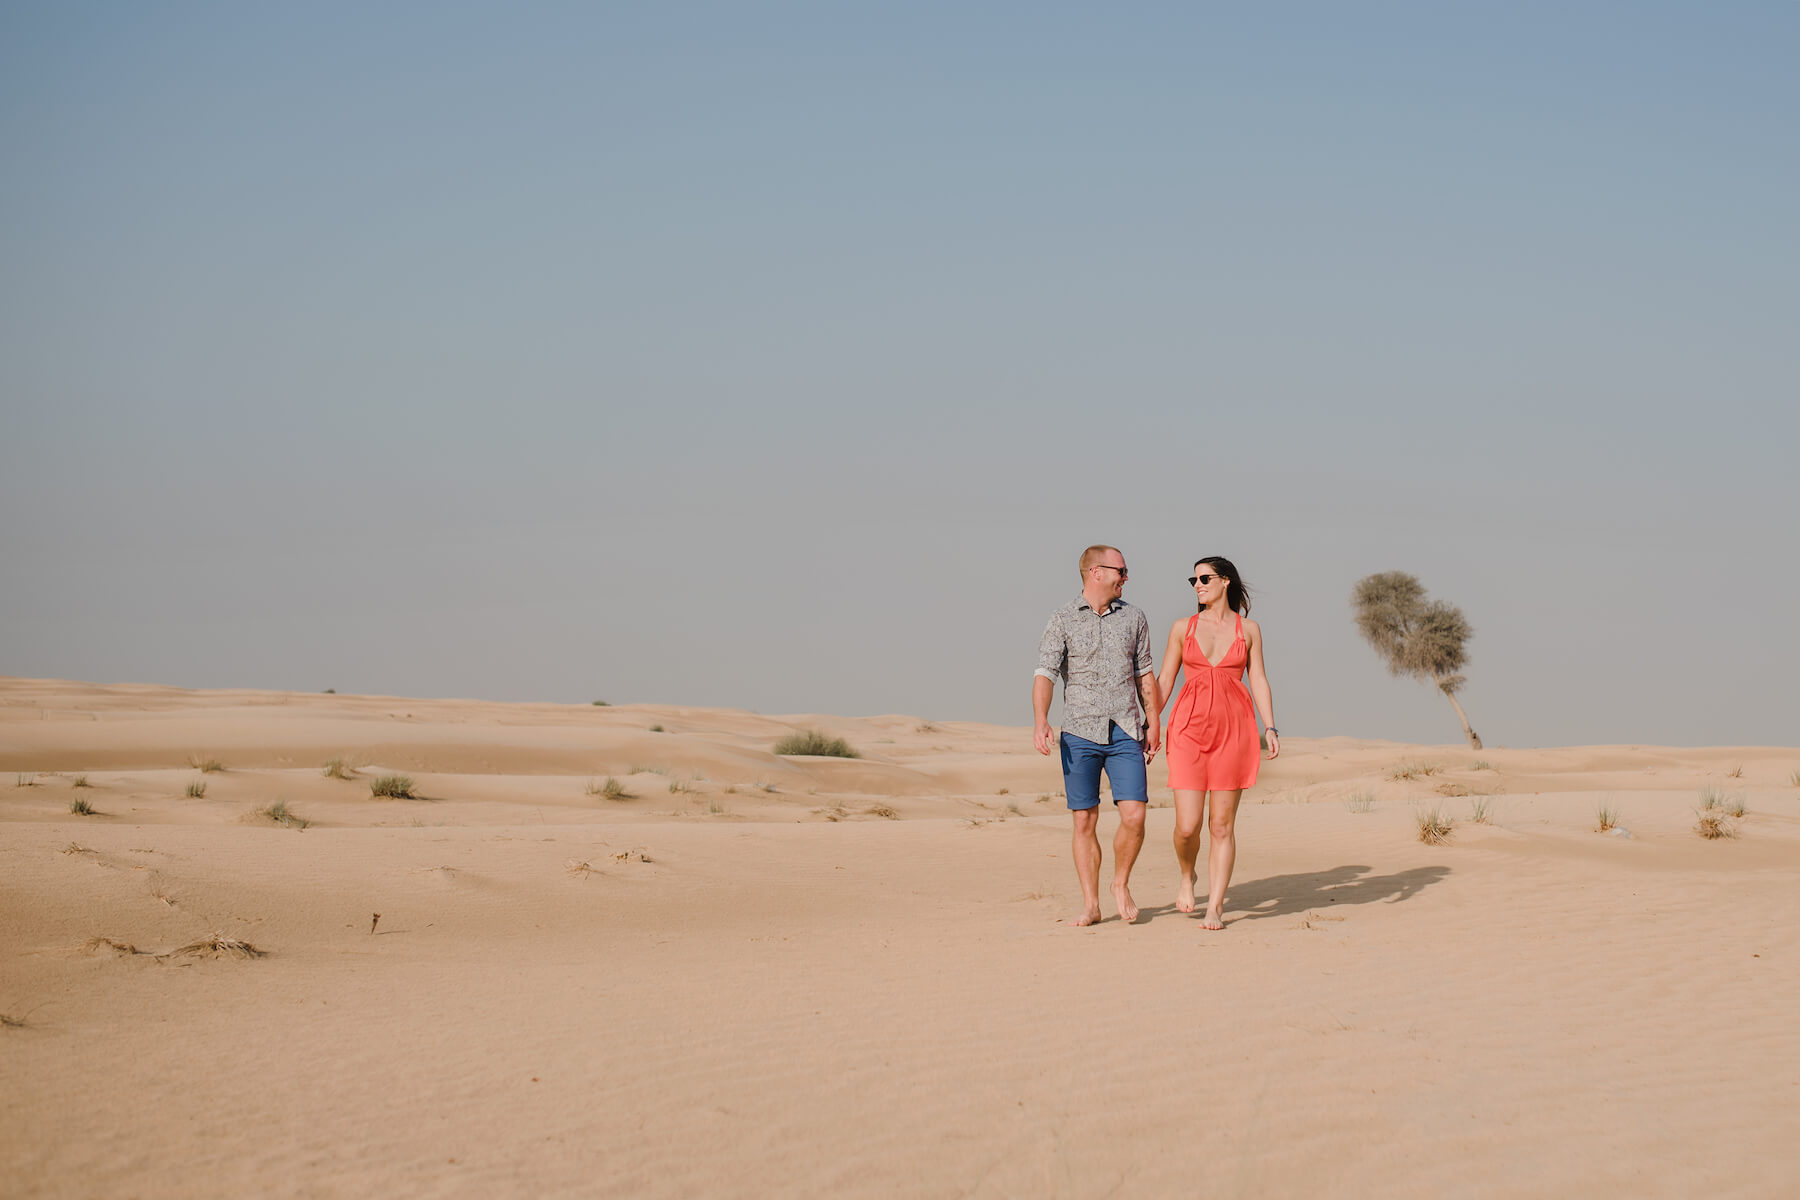 Couple walking together and holding hands in the desert sands of Al Qudra Lake